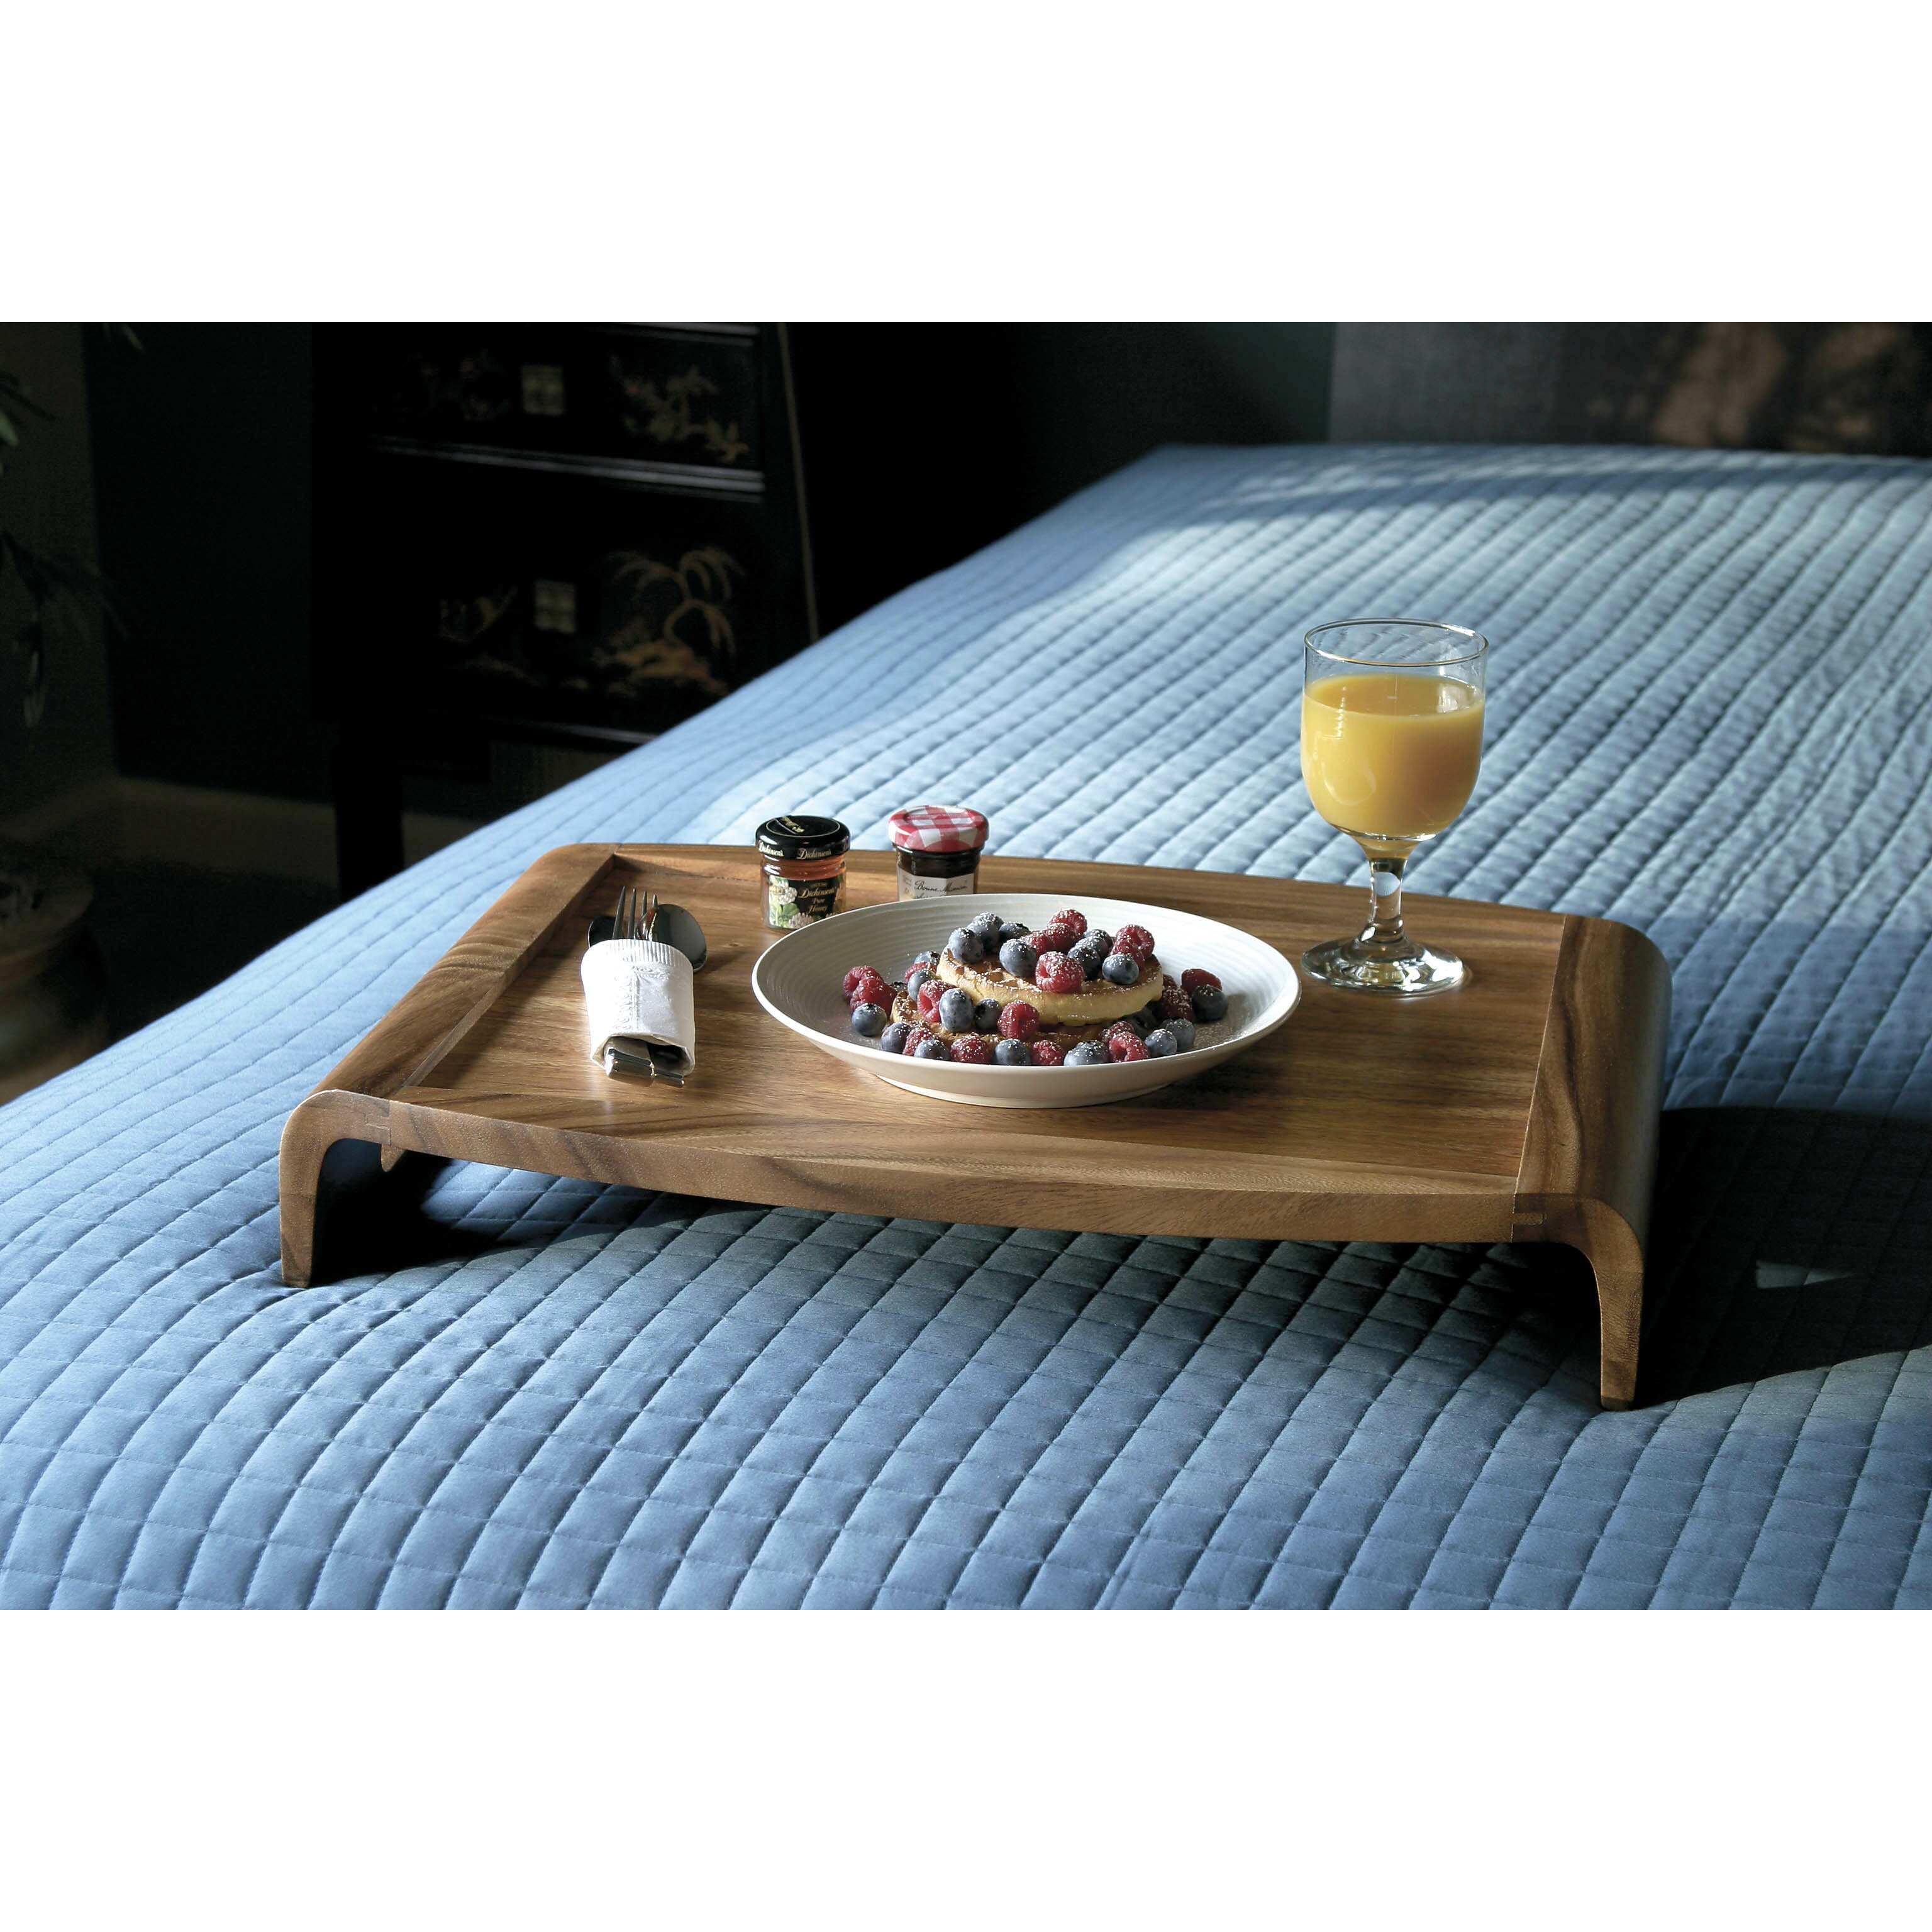 5 Piece Oblong Tv Tray Set Walmartcom Dining Trays With Legs